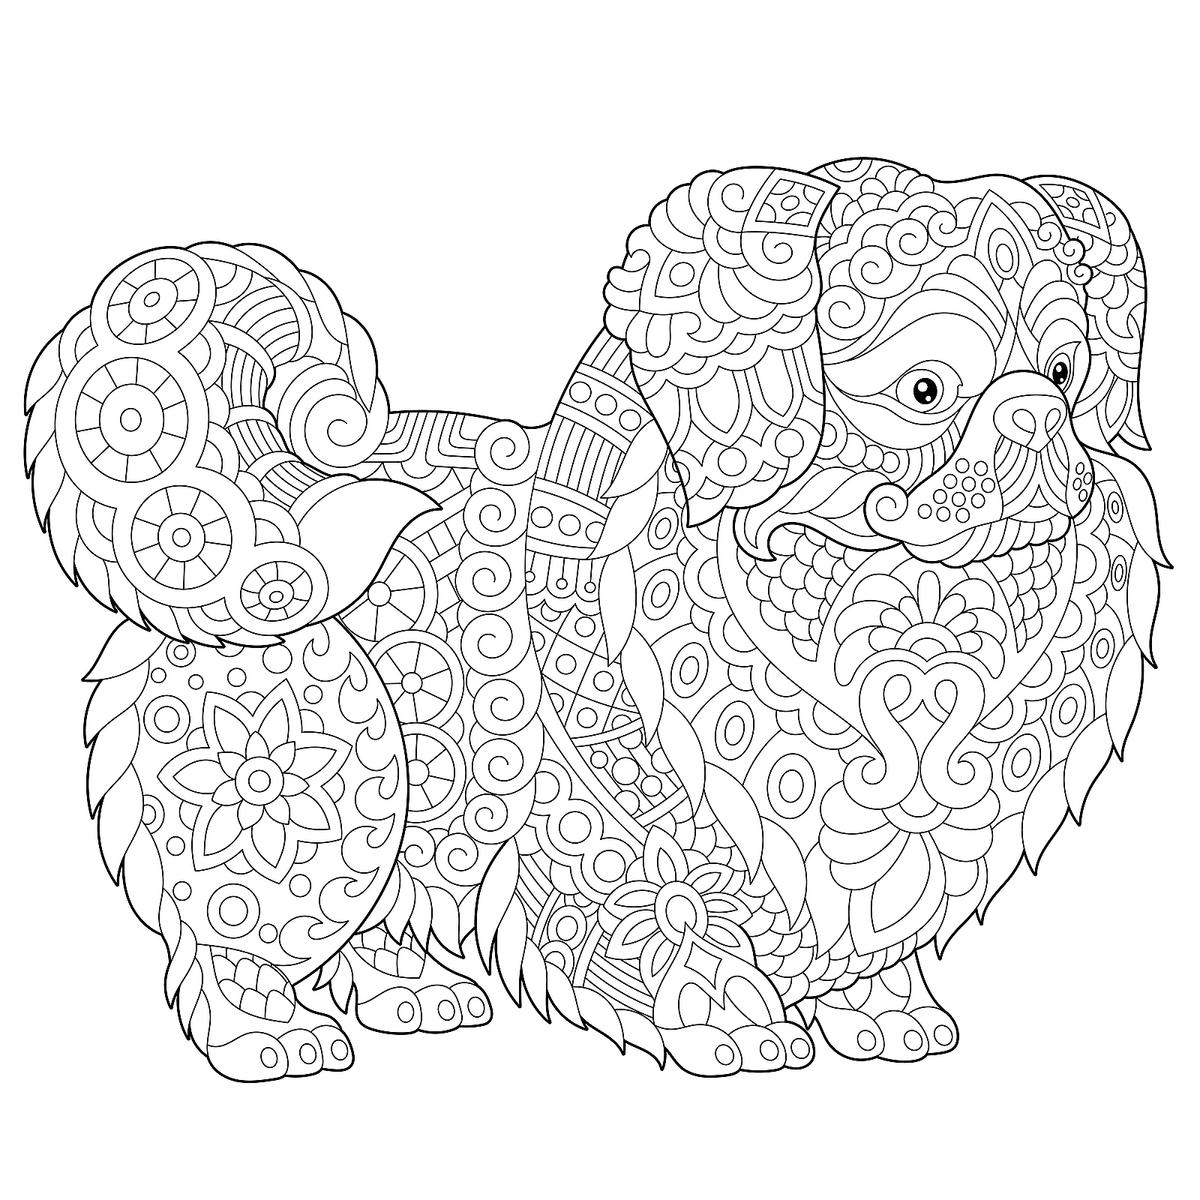 God is love free coloring pages are a fun way for kids of all ages ... | 1200x1200